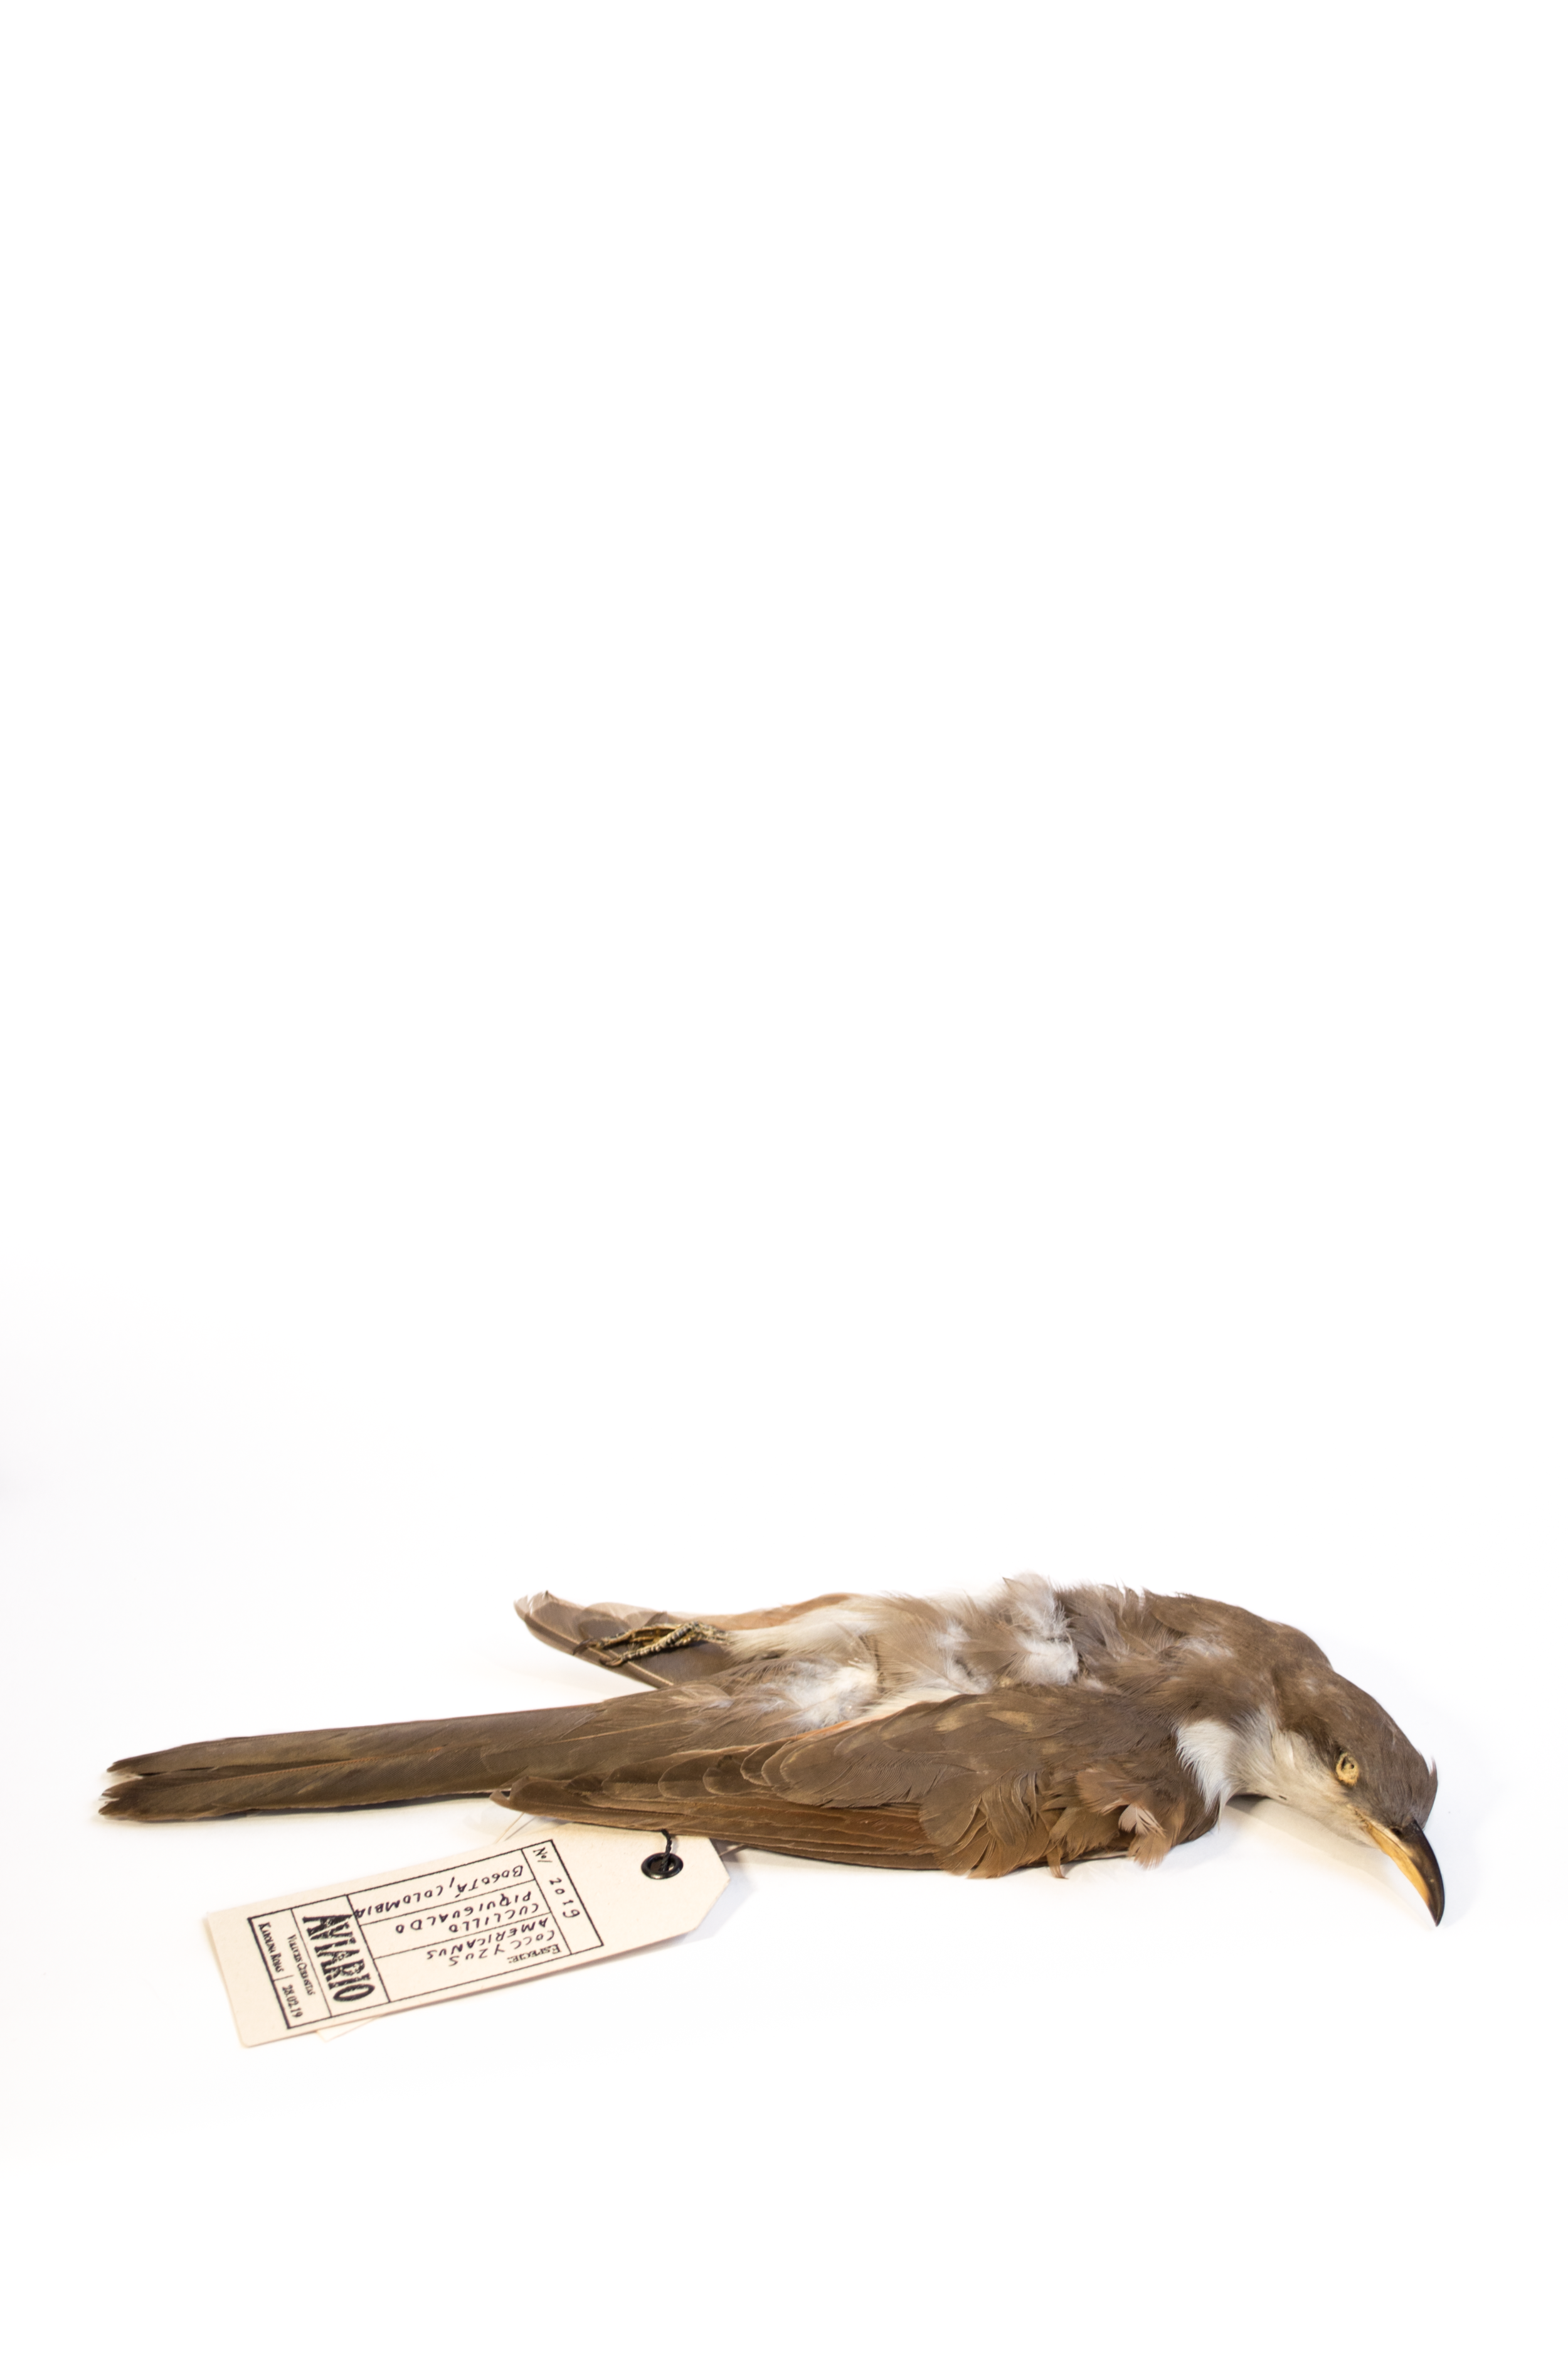 Taxidermias_Cuclillo_Karolina Rojas_1_© Stephanie Tique .png